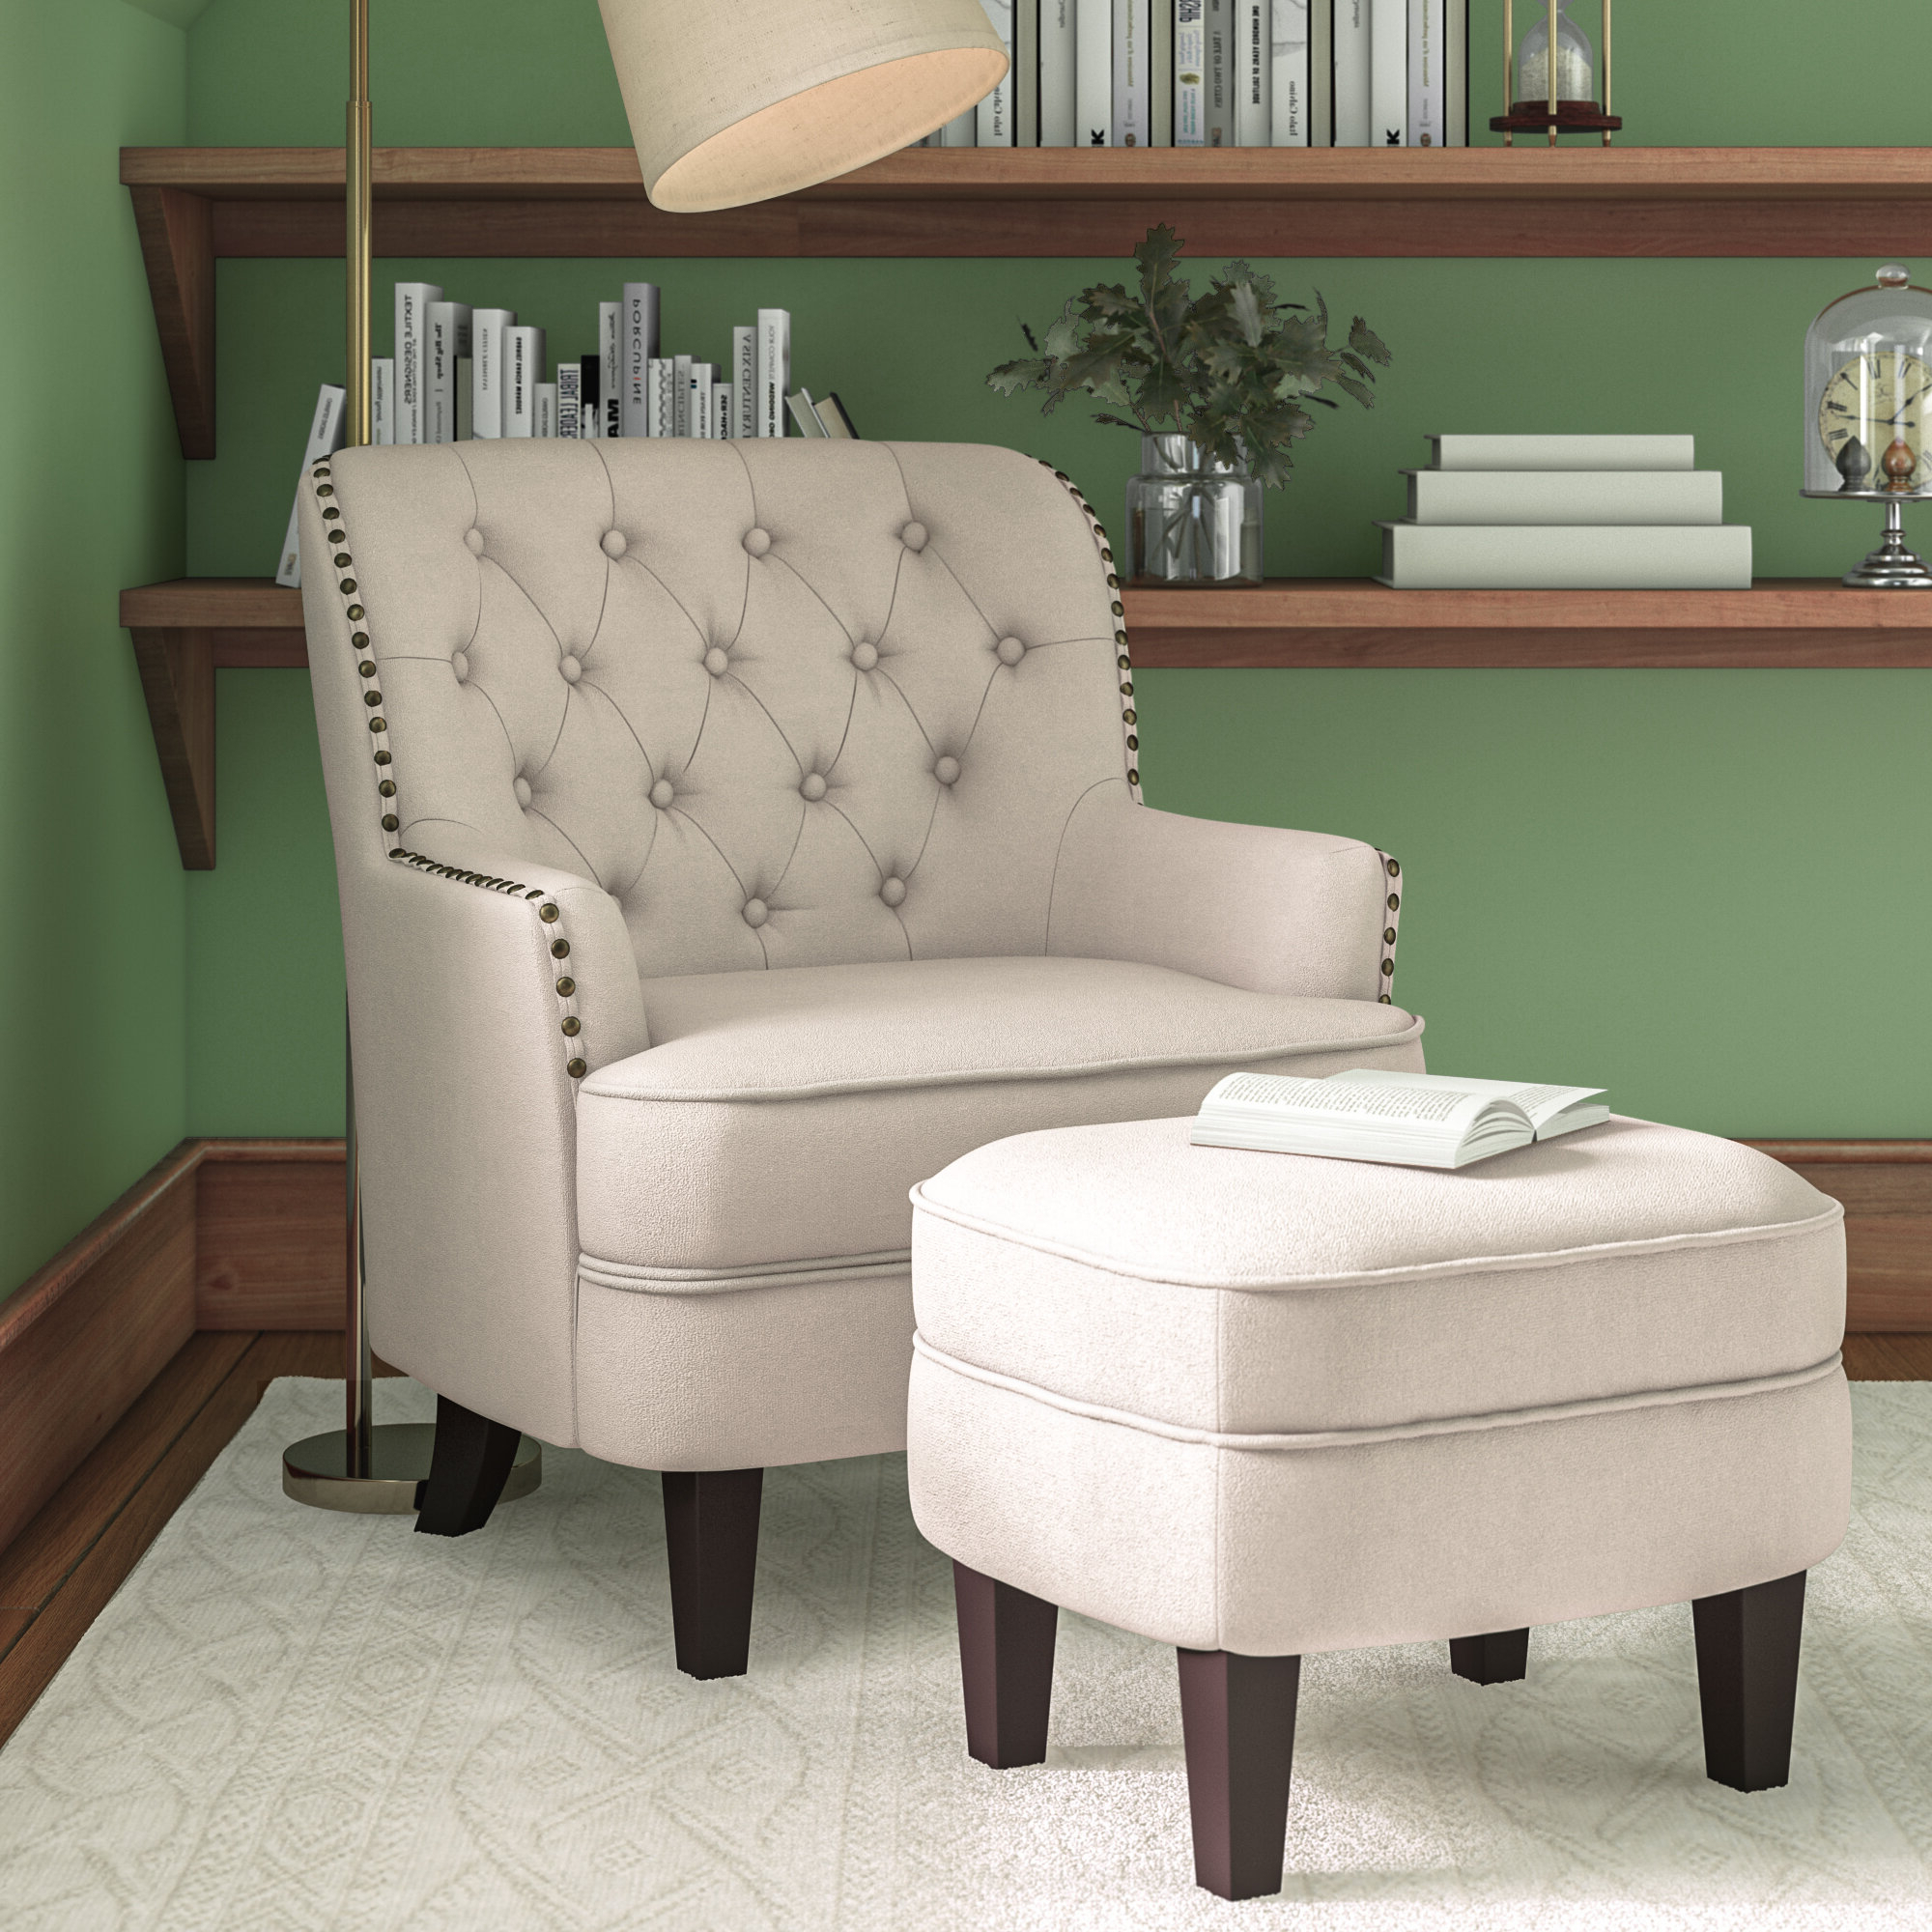 """Famous Dario 22"""" W Polyester Slipper Chair And Ottoman Within Starks Tufted Fabric Chesterfield Chair And Ottoman Sets (View 7 of 20)"""